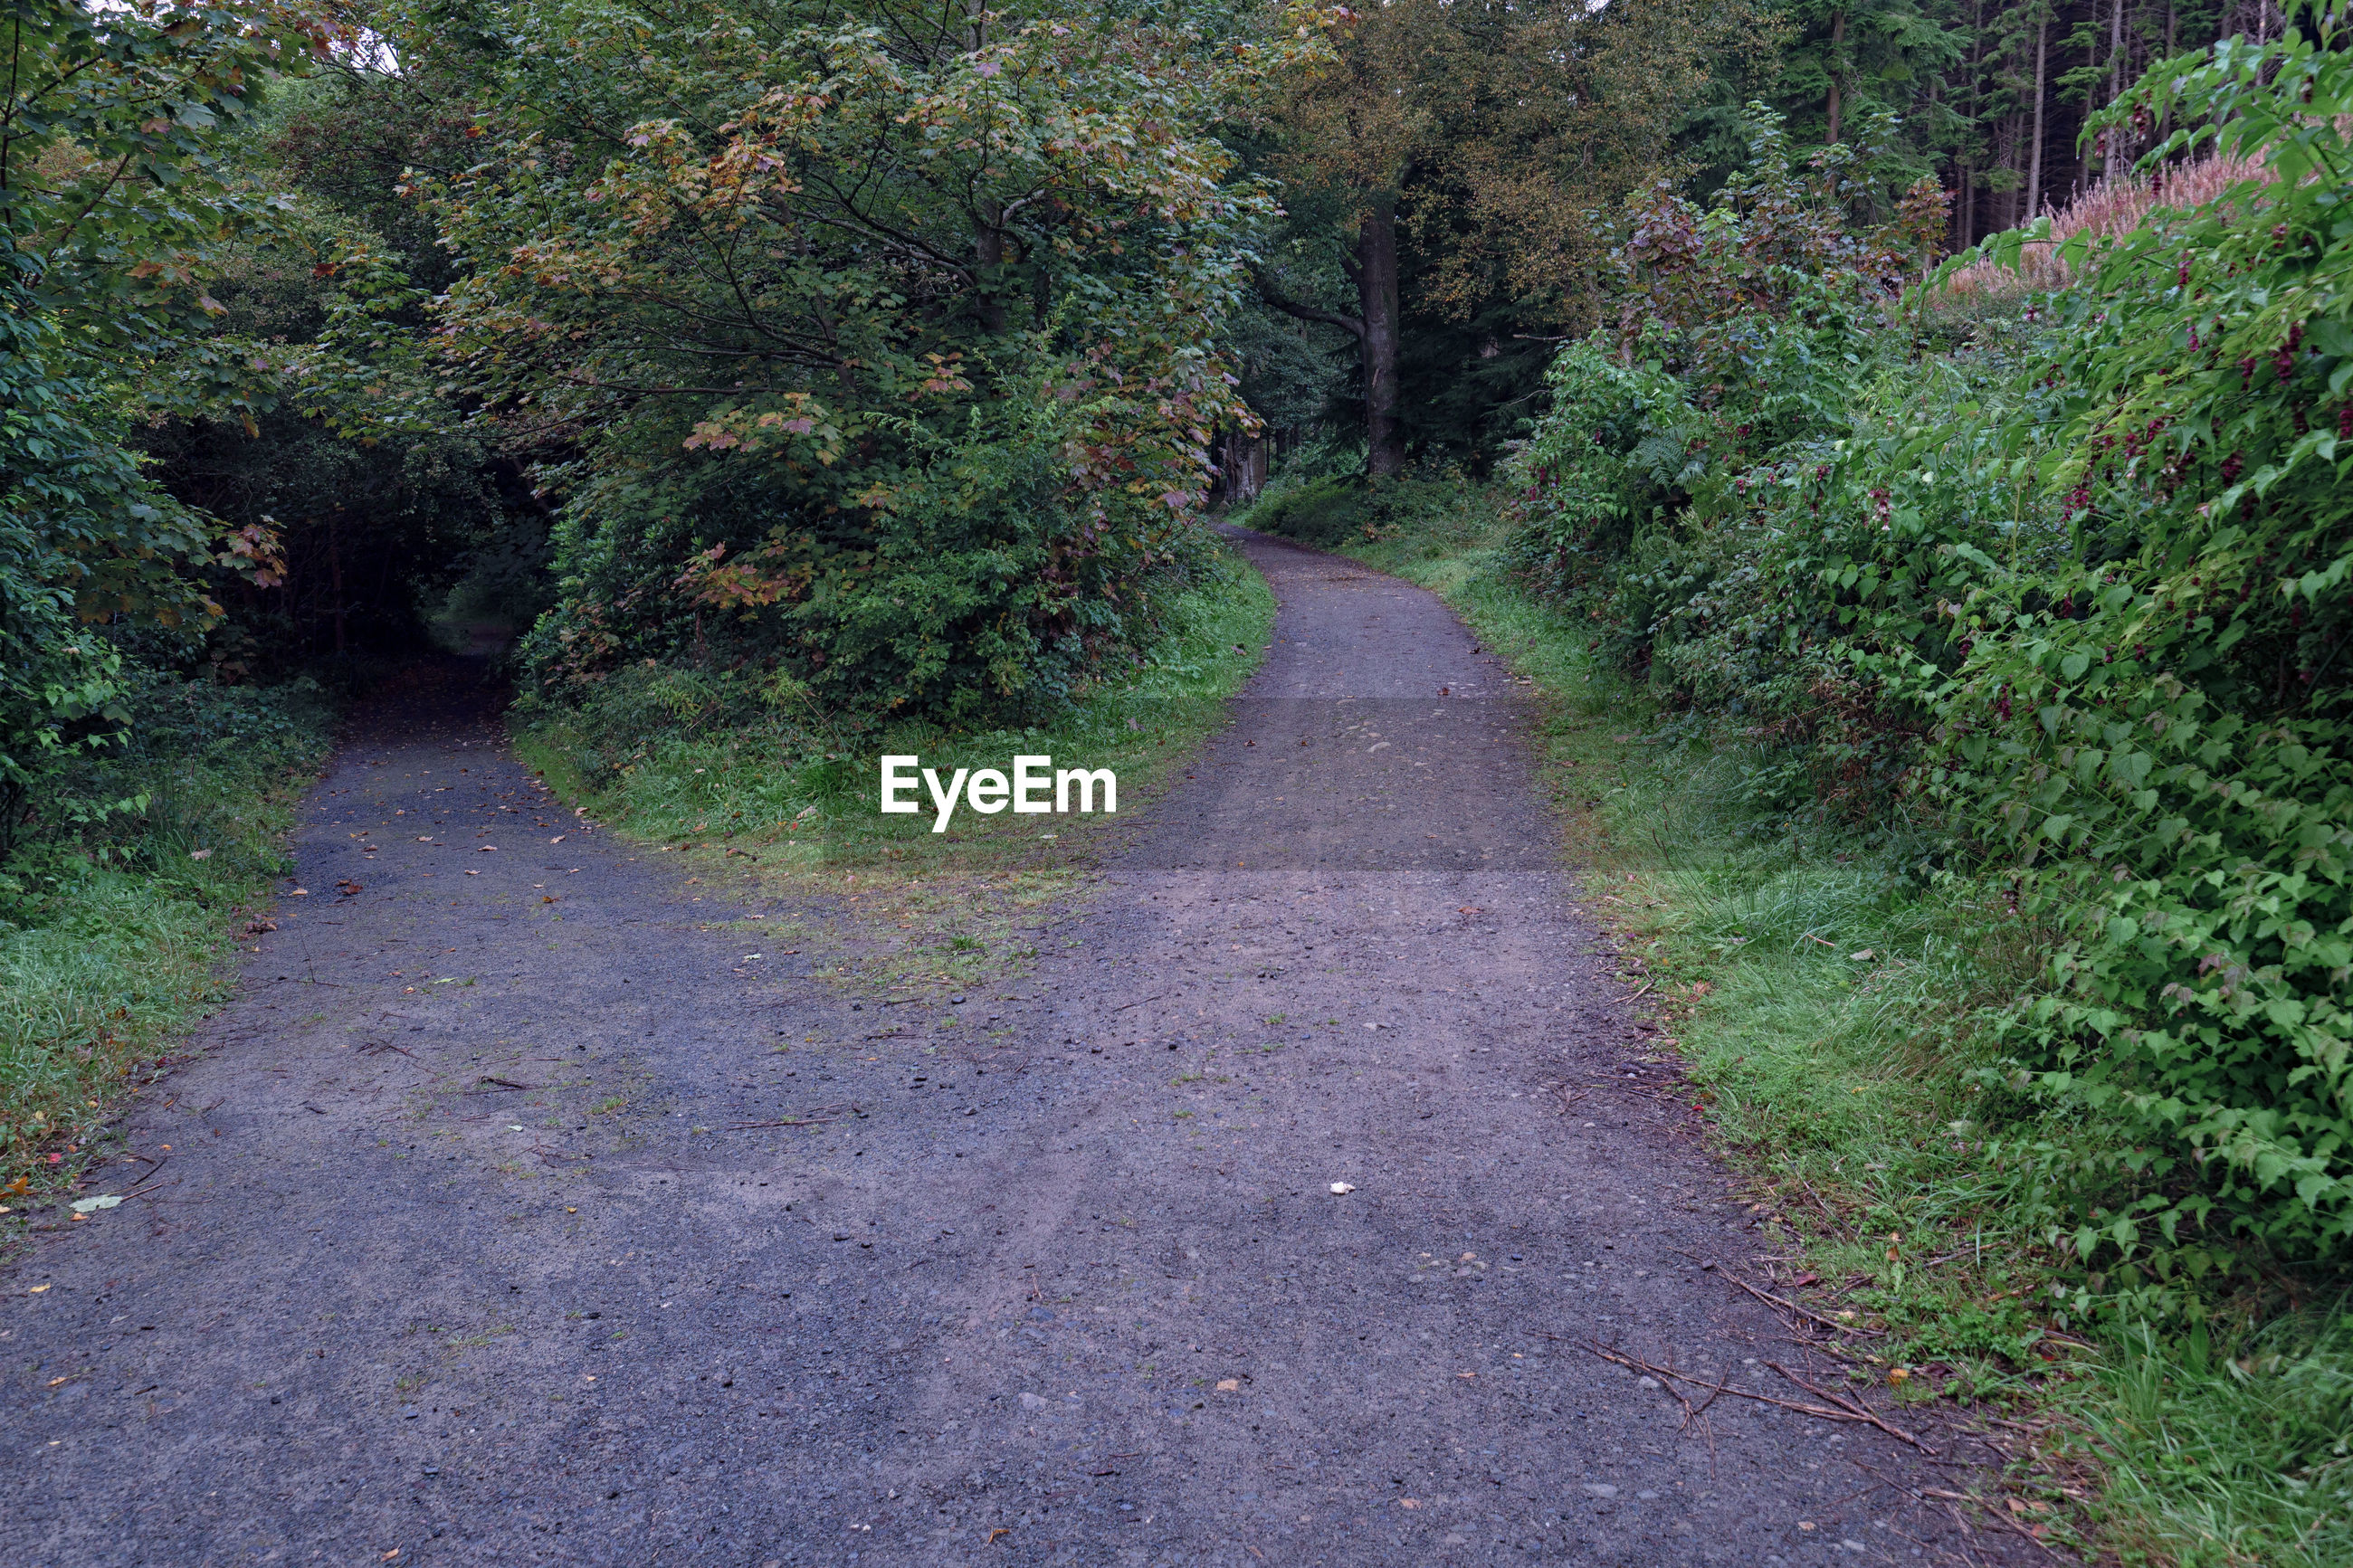 VIEW OF ROAD IN FOREST